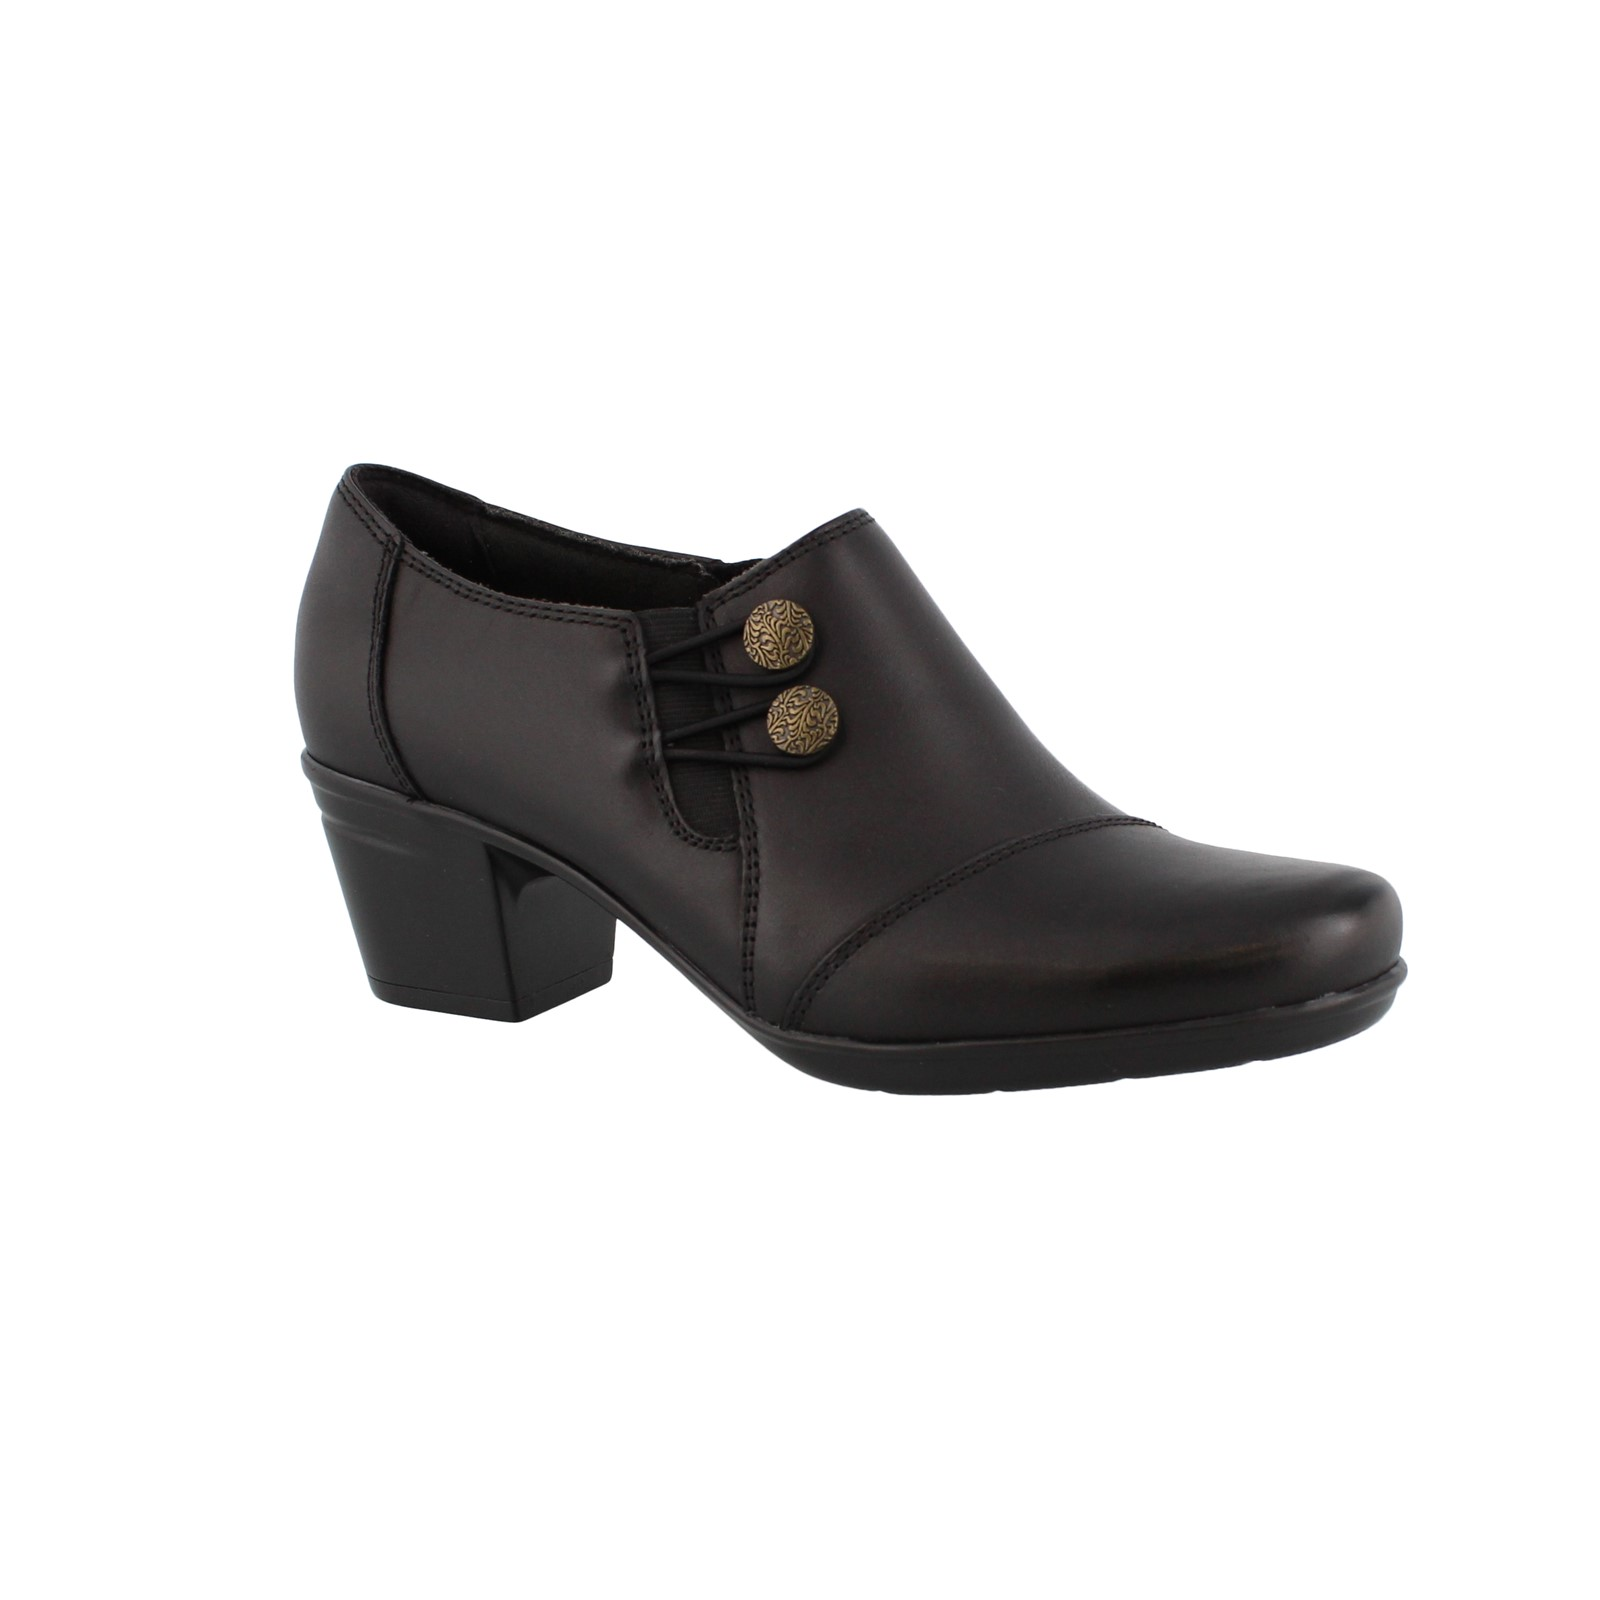 b1920ba65db Next. add to favorites. Women s Clarks